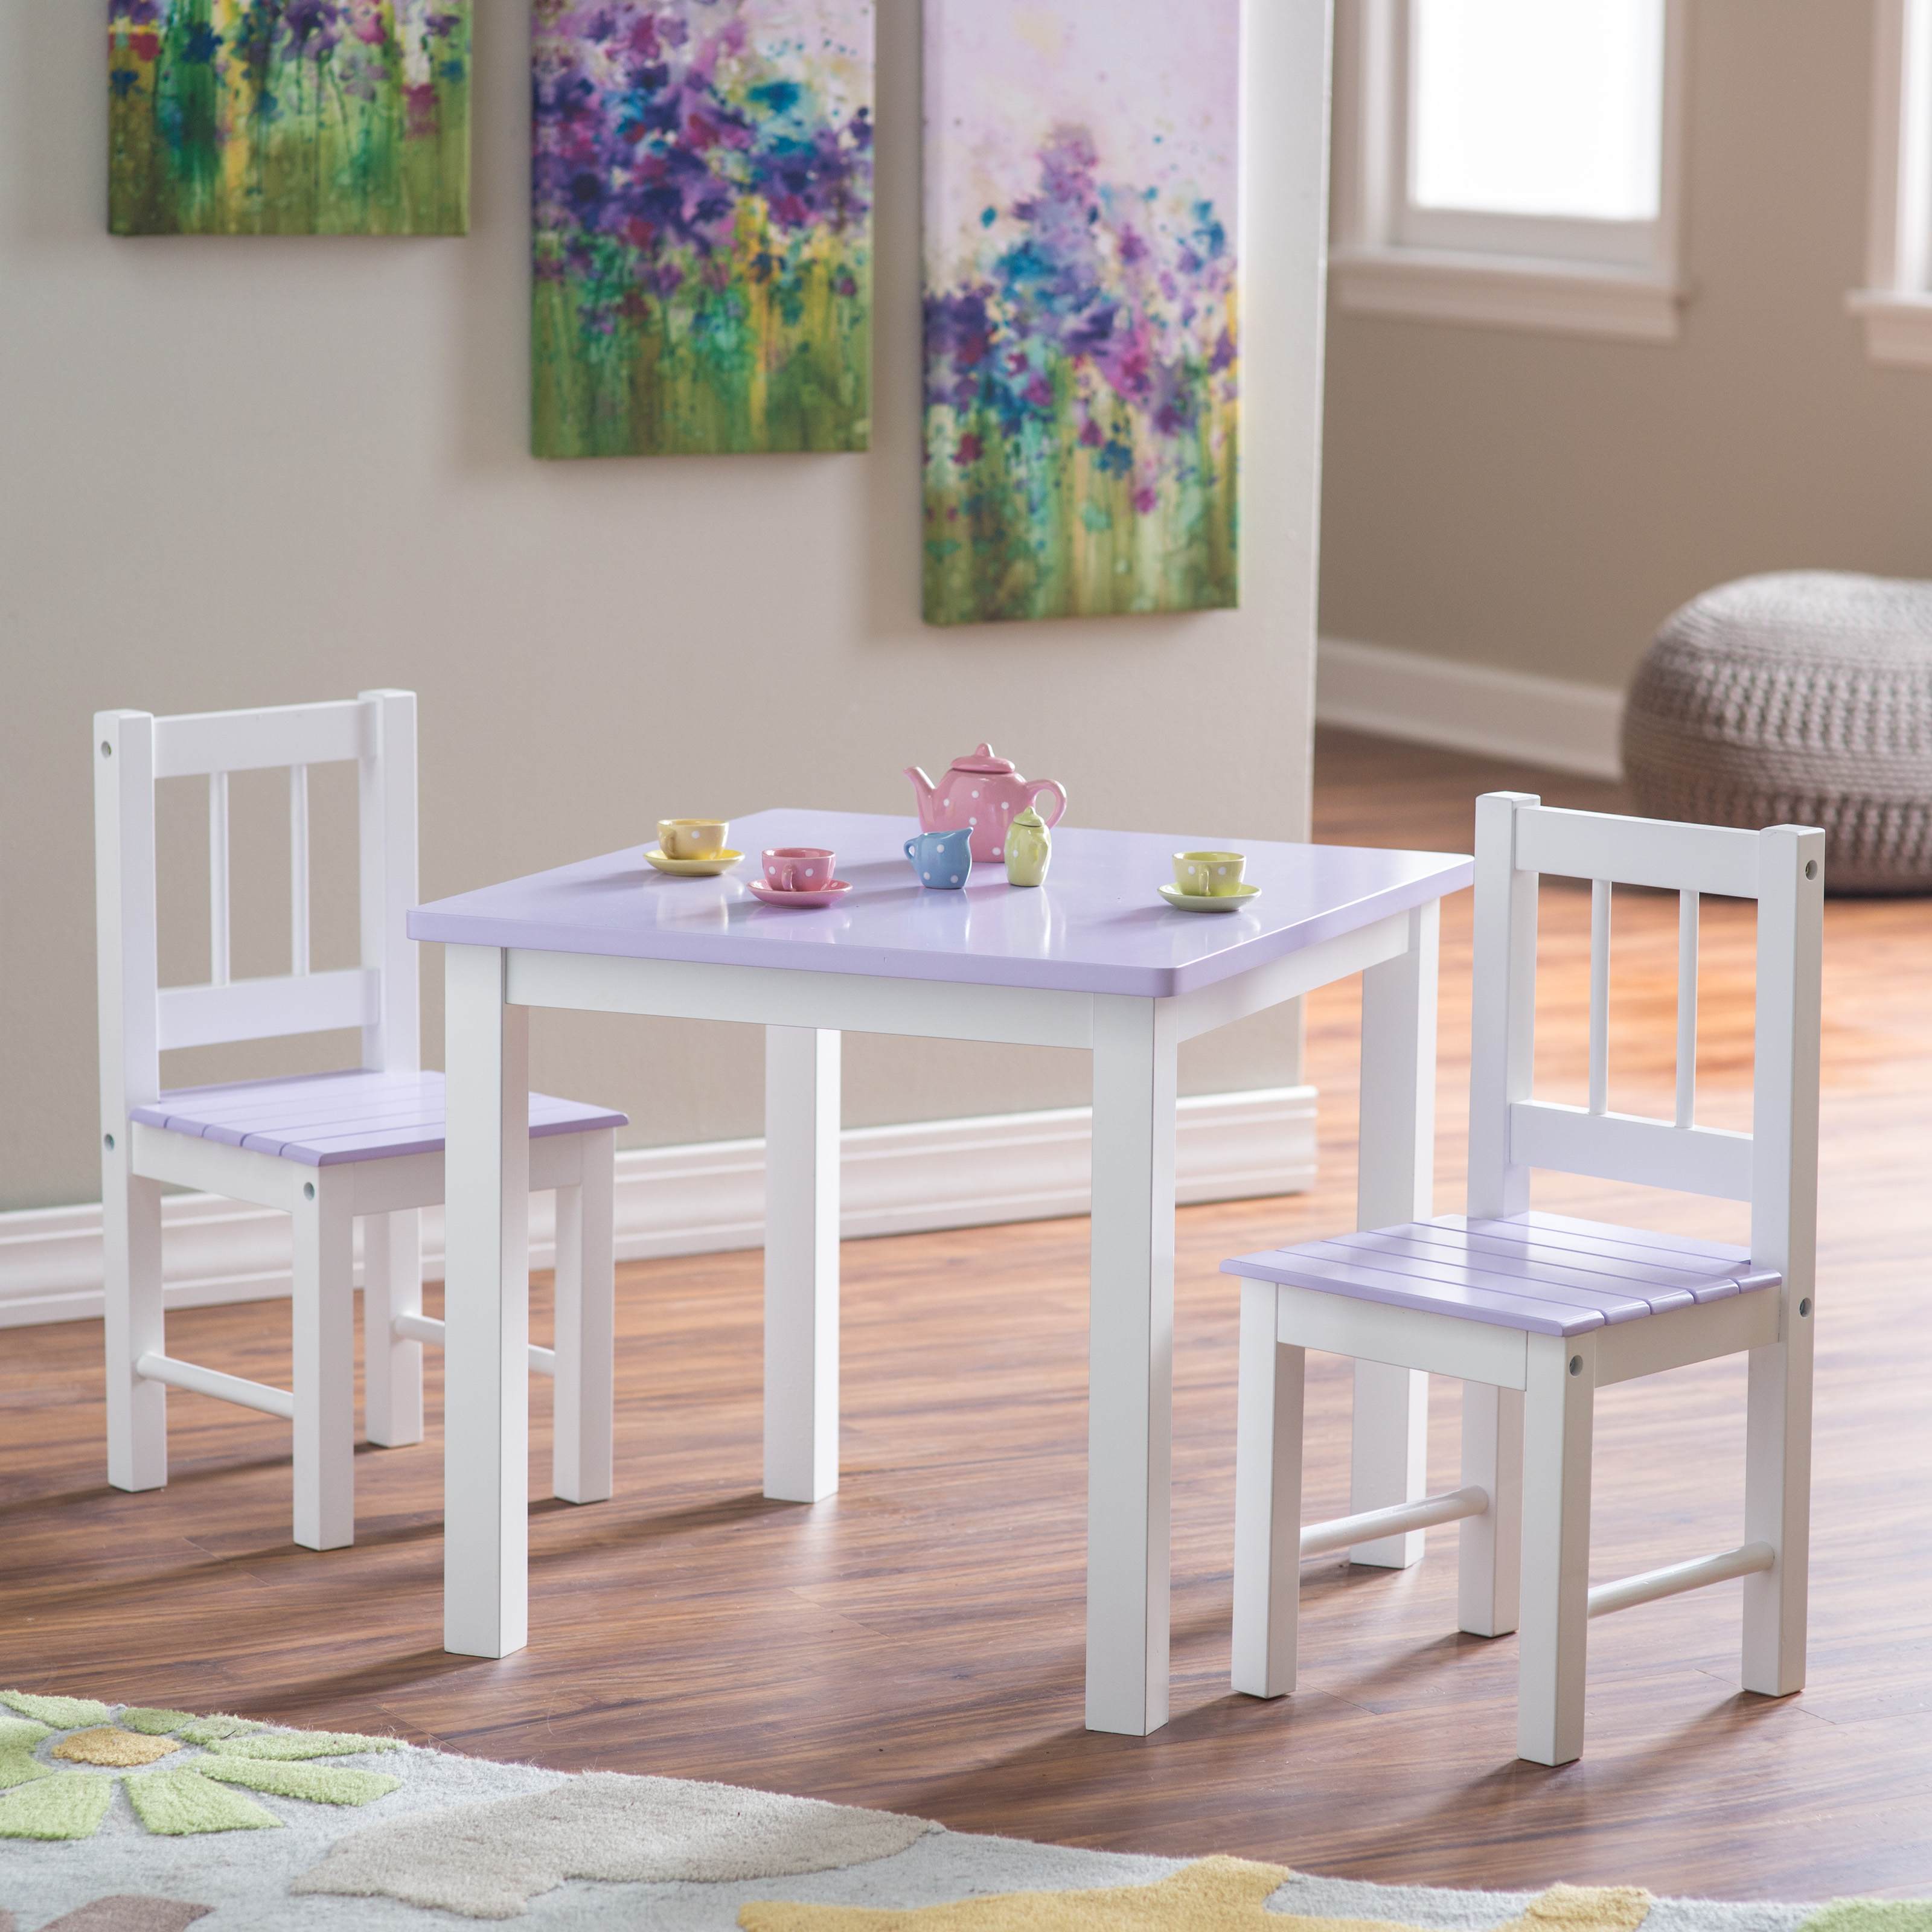 Lipper Kids Small Lilac and White Table and Chair Set Hayneedle